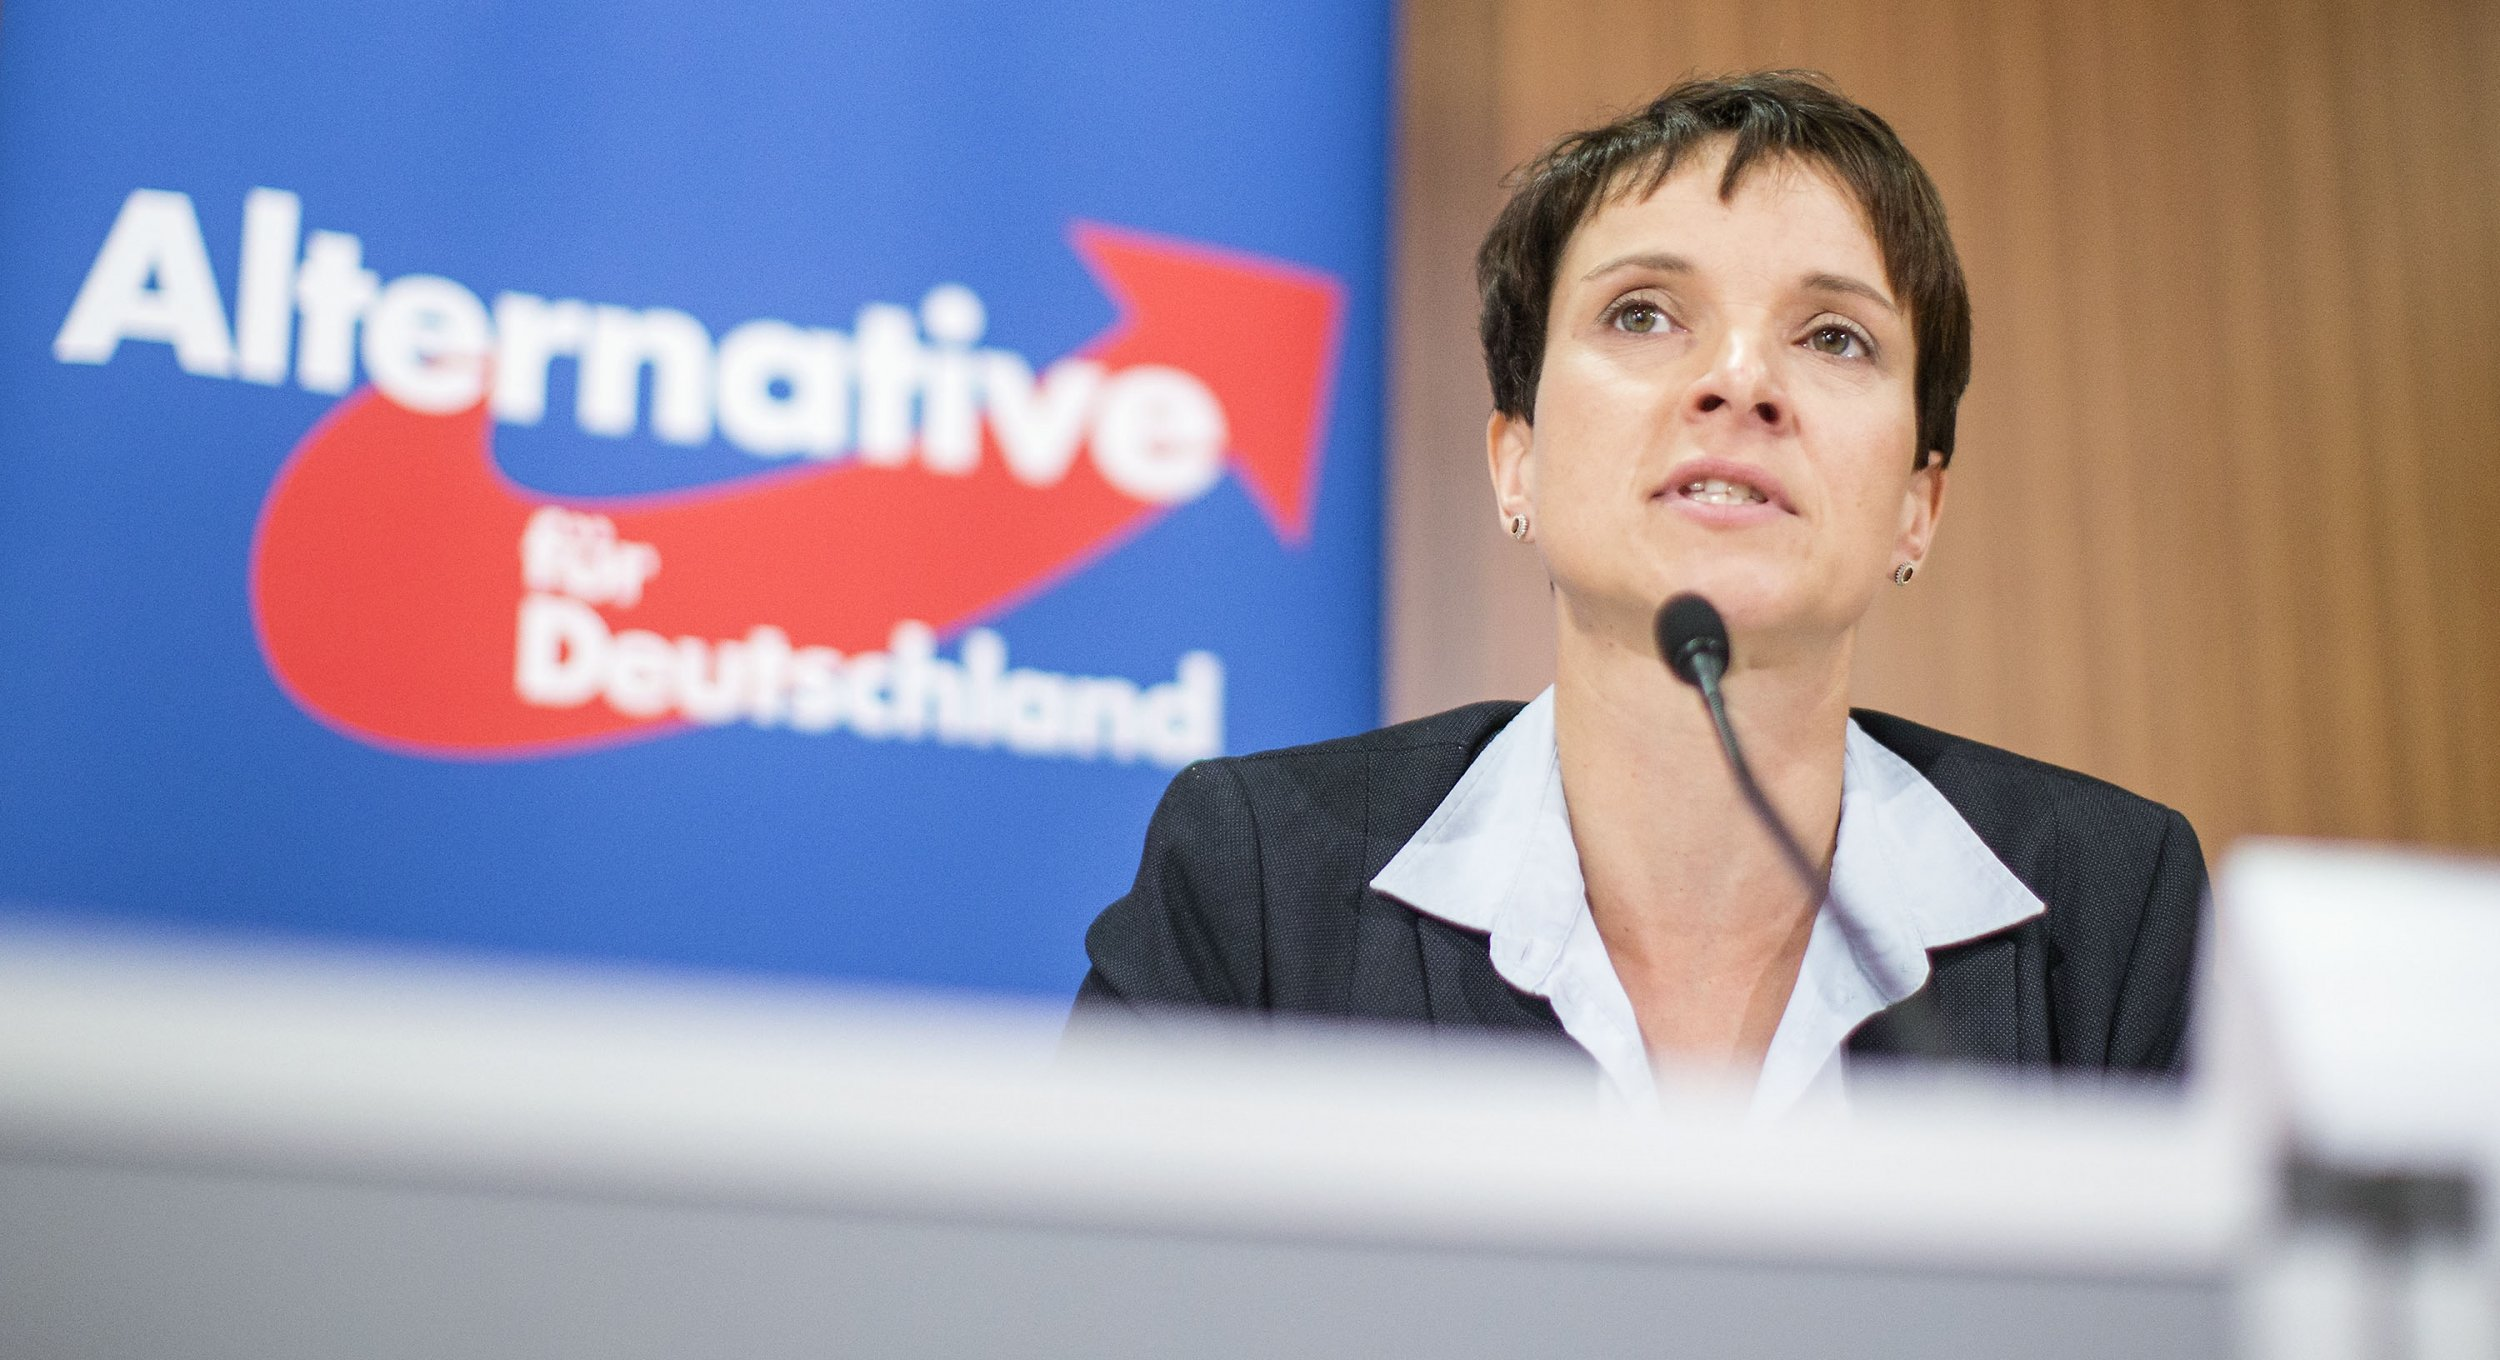 Frauke Petry leader of Alternative for Germany (AfD).